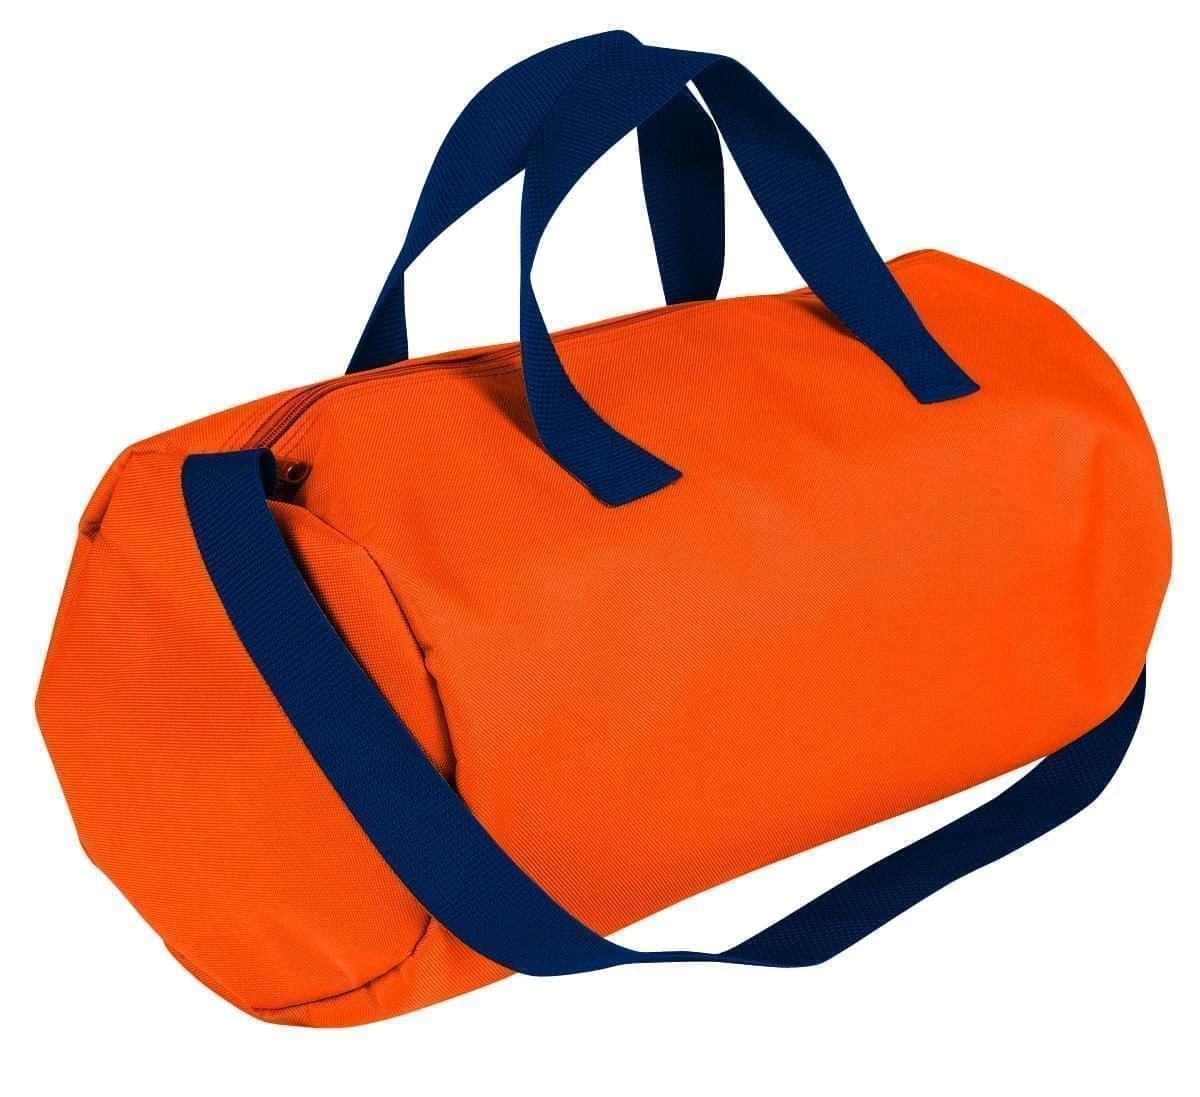 USA Made Nylon Poly Gym Roll Bags, Orange-Navy, ROCX31AAXZ